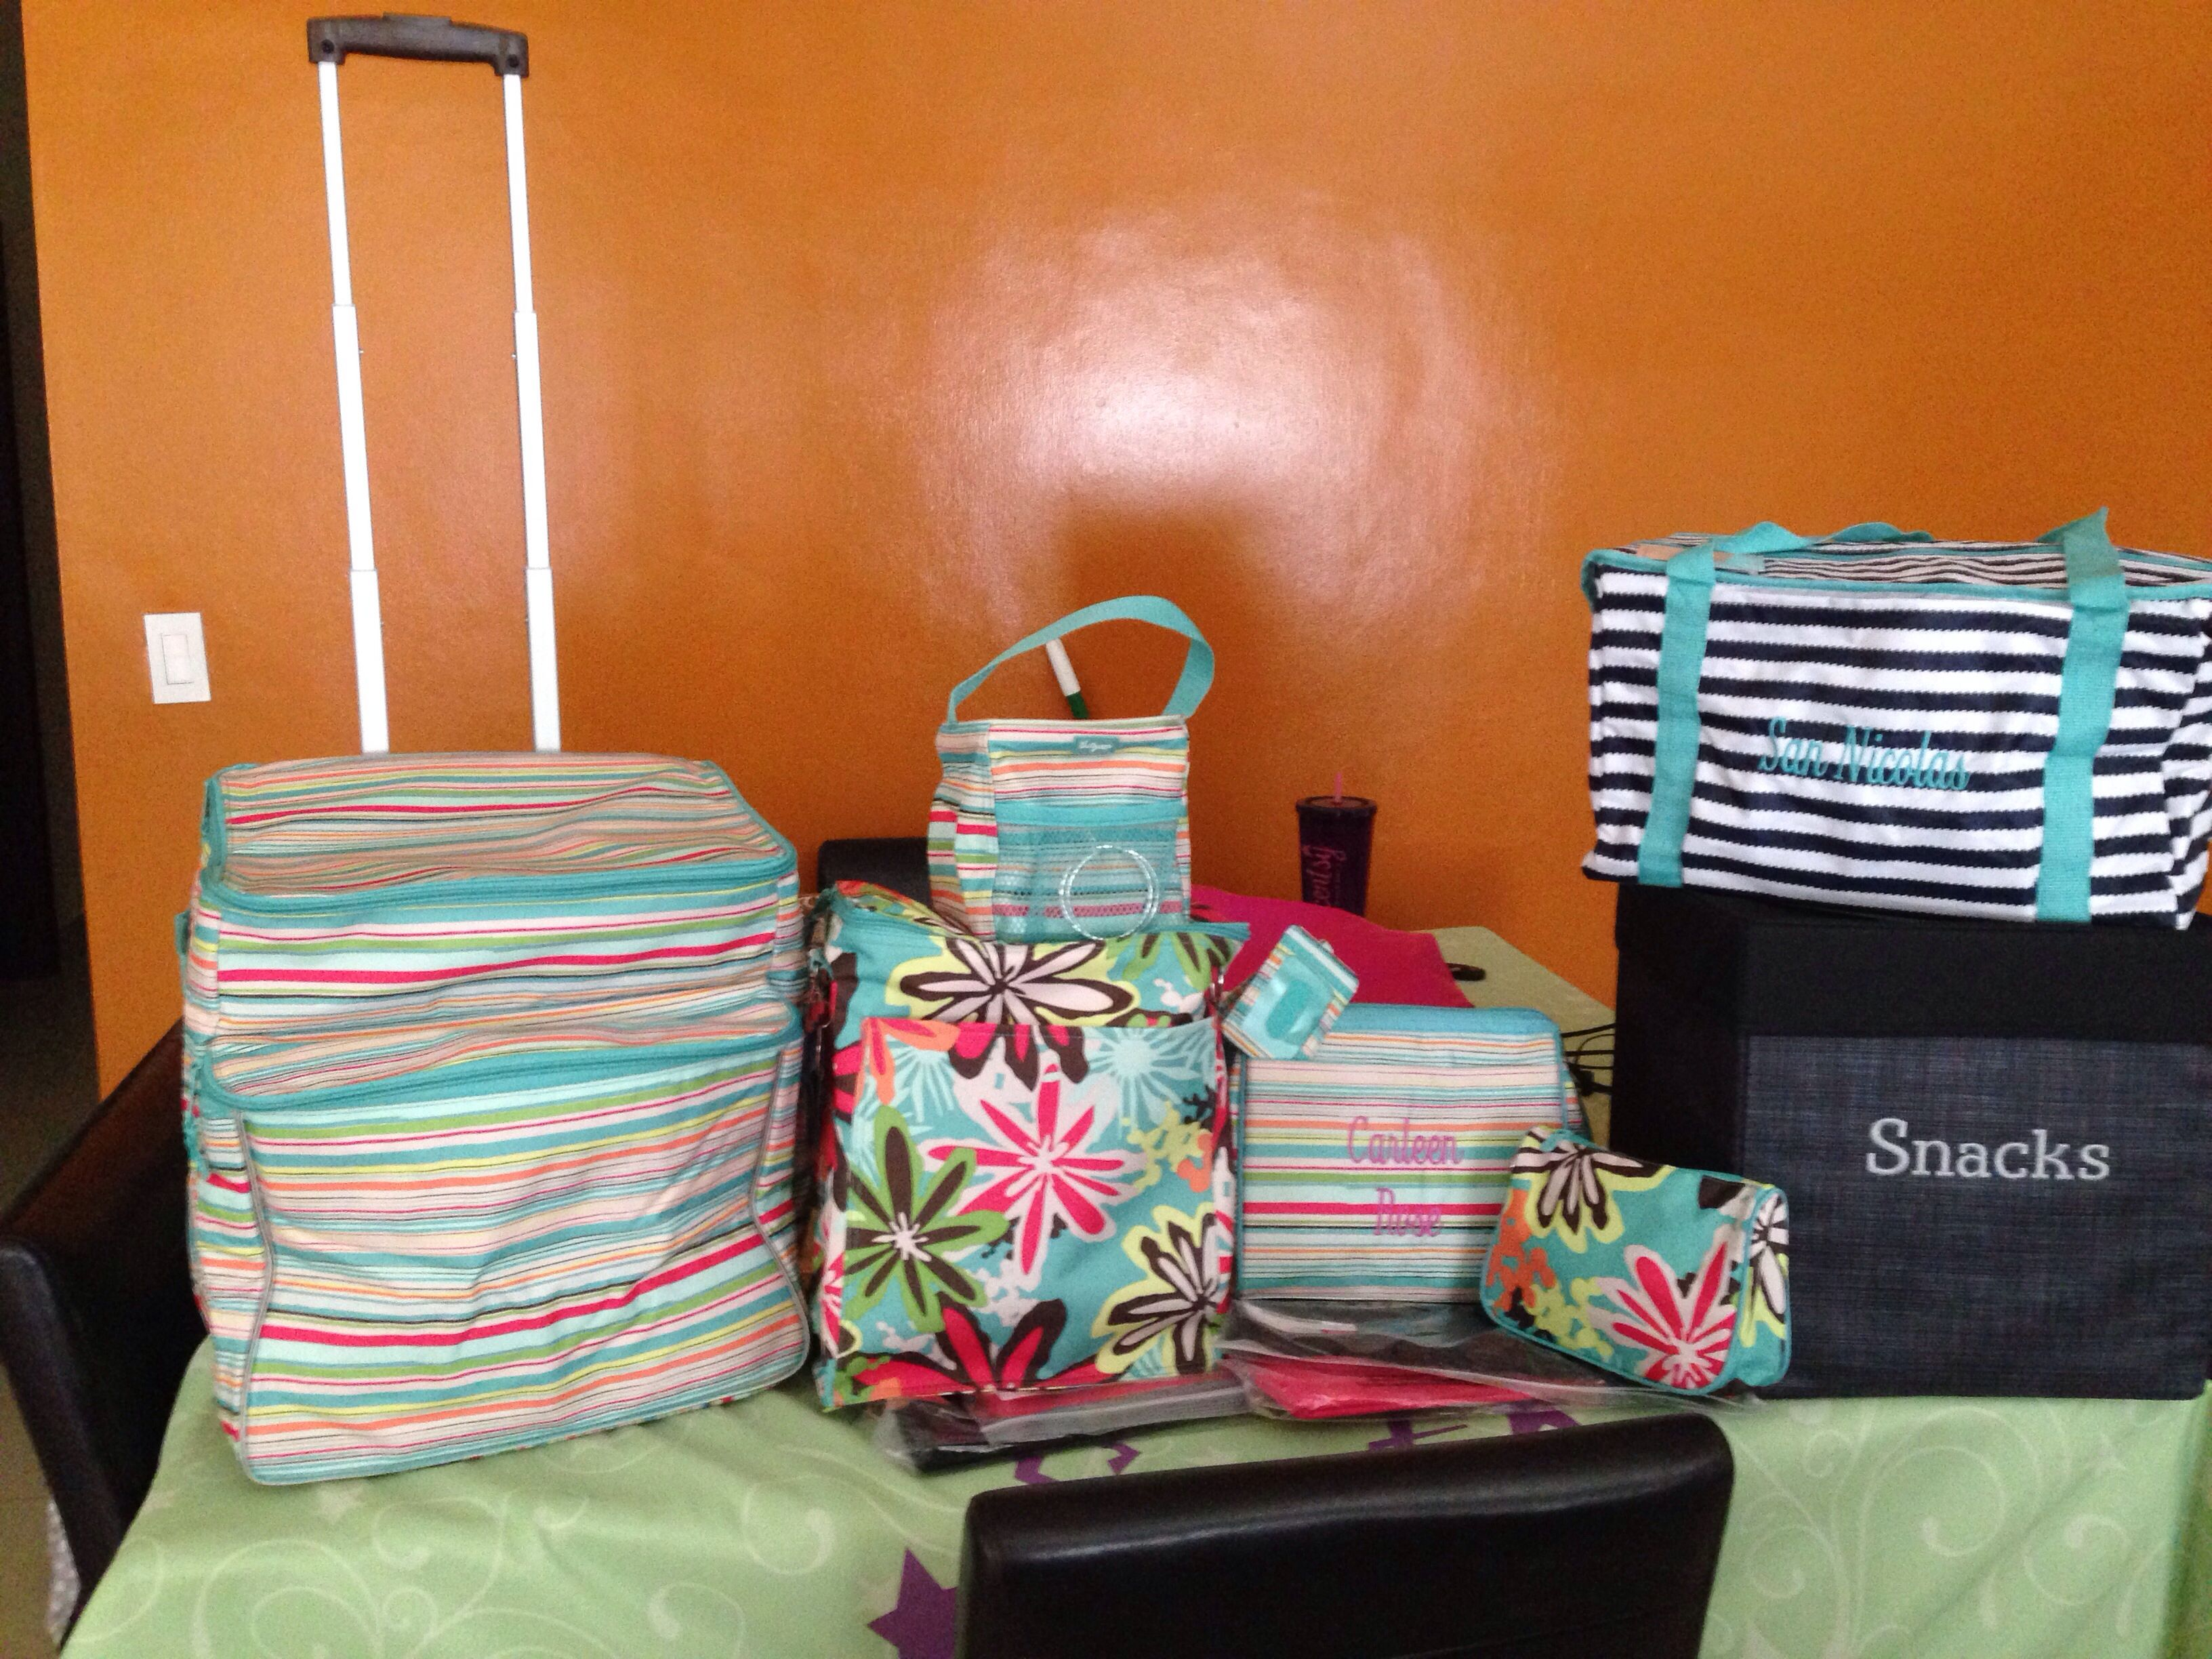 Hosted a thirty one party & got this sunny stripe making memories thermal as a hostess exclusive. Love the 1/2 offs & freebies!